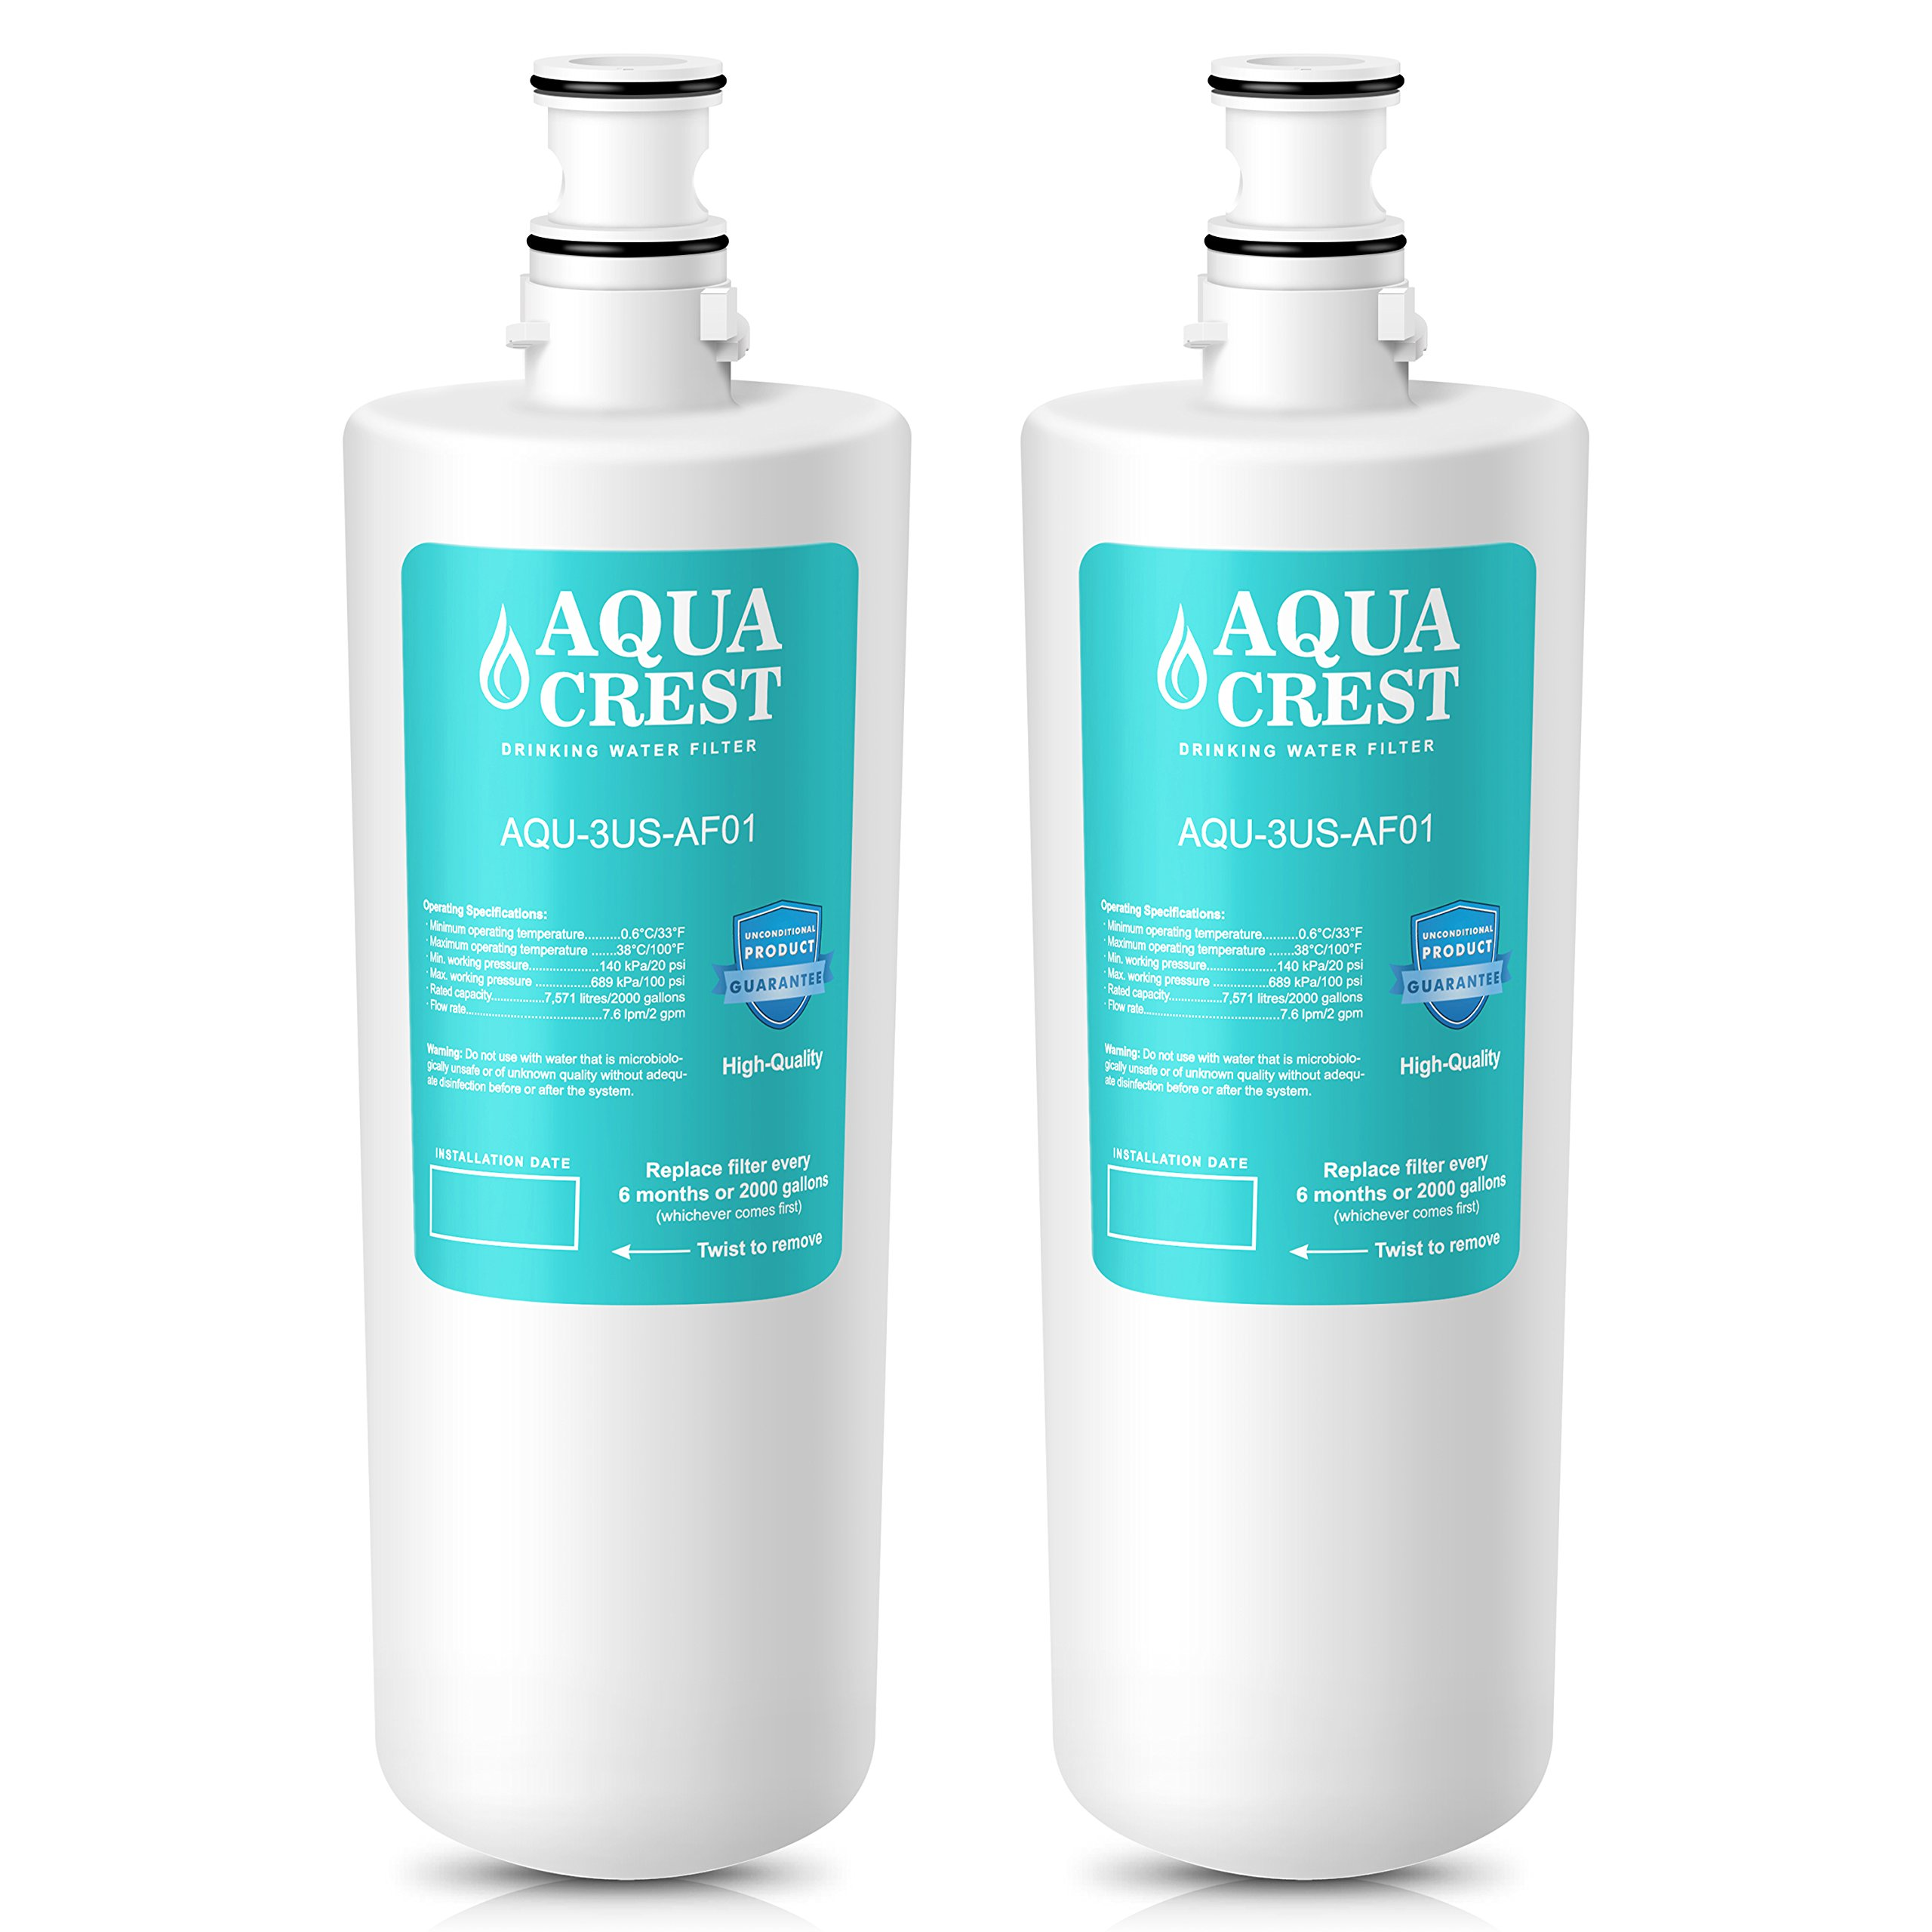 AQUACREST 3US-AF01 Replacement Under Sink Water Filter, Compatible with Standard Filtrete 3US-AF01, 3US-AS01, Whirlpool WHCF-SRC, WHCF-SUFC, WHCF-SUF Water Filter (Pack of 2)